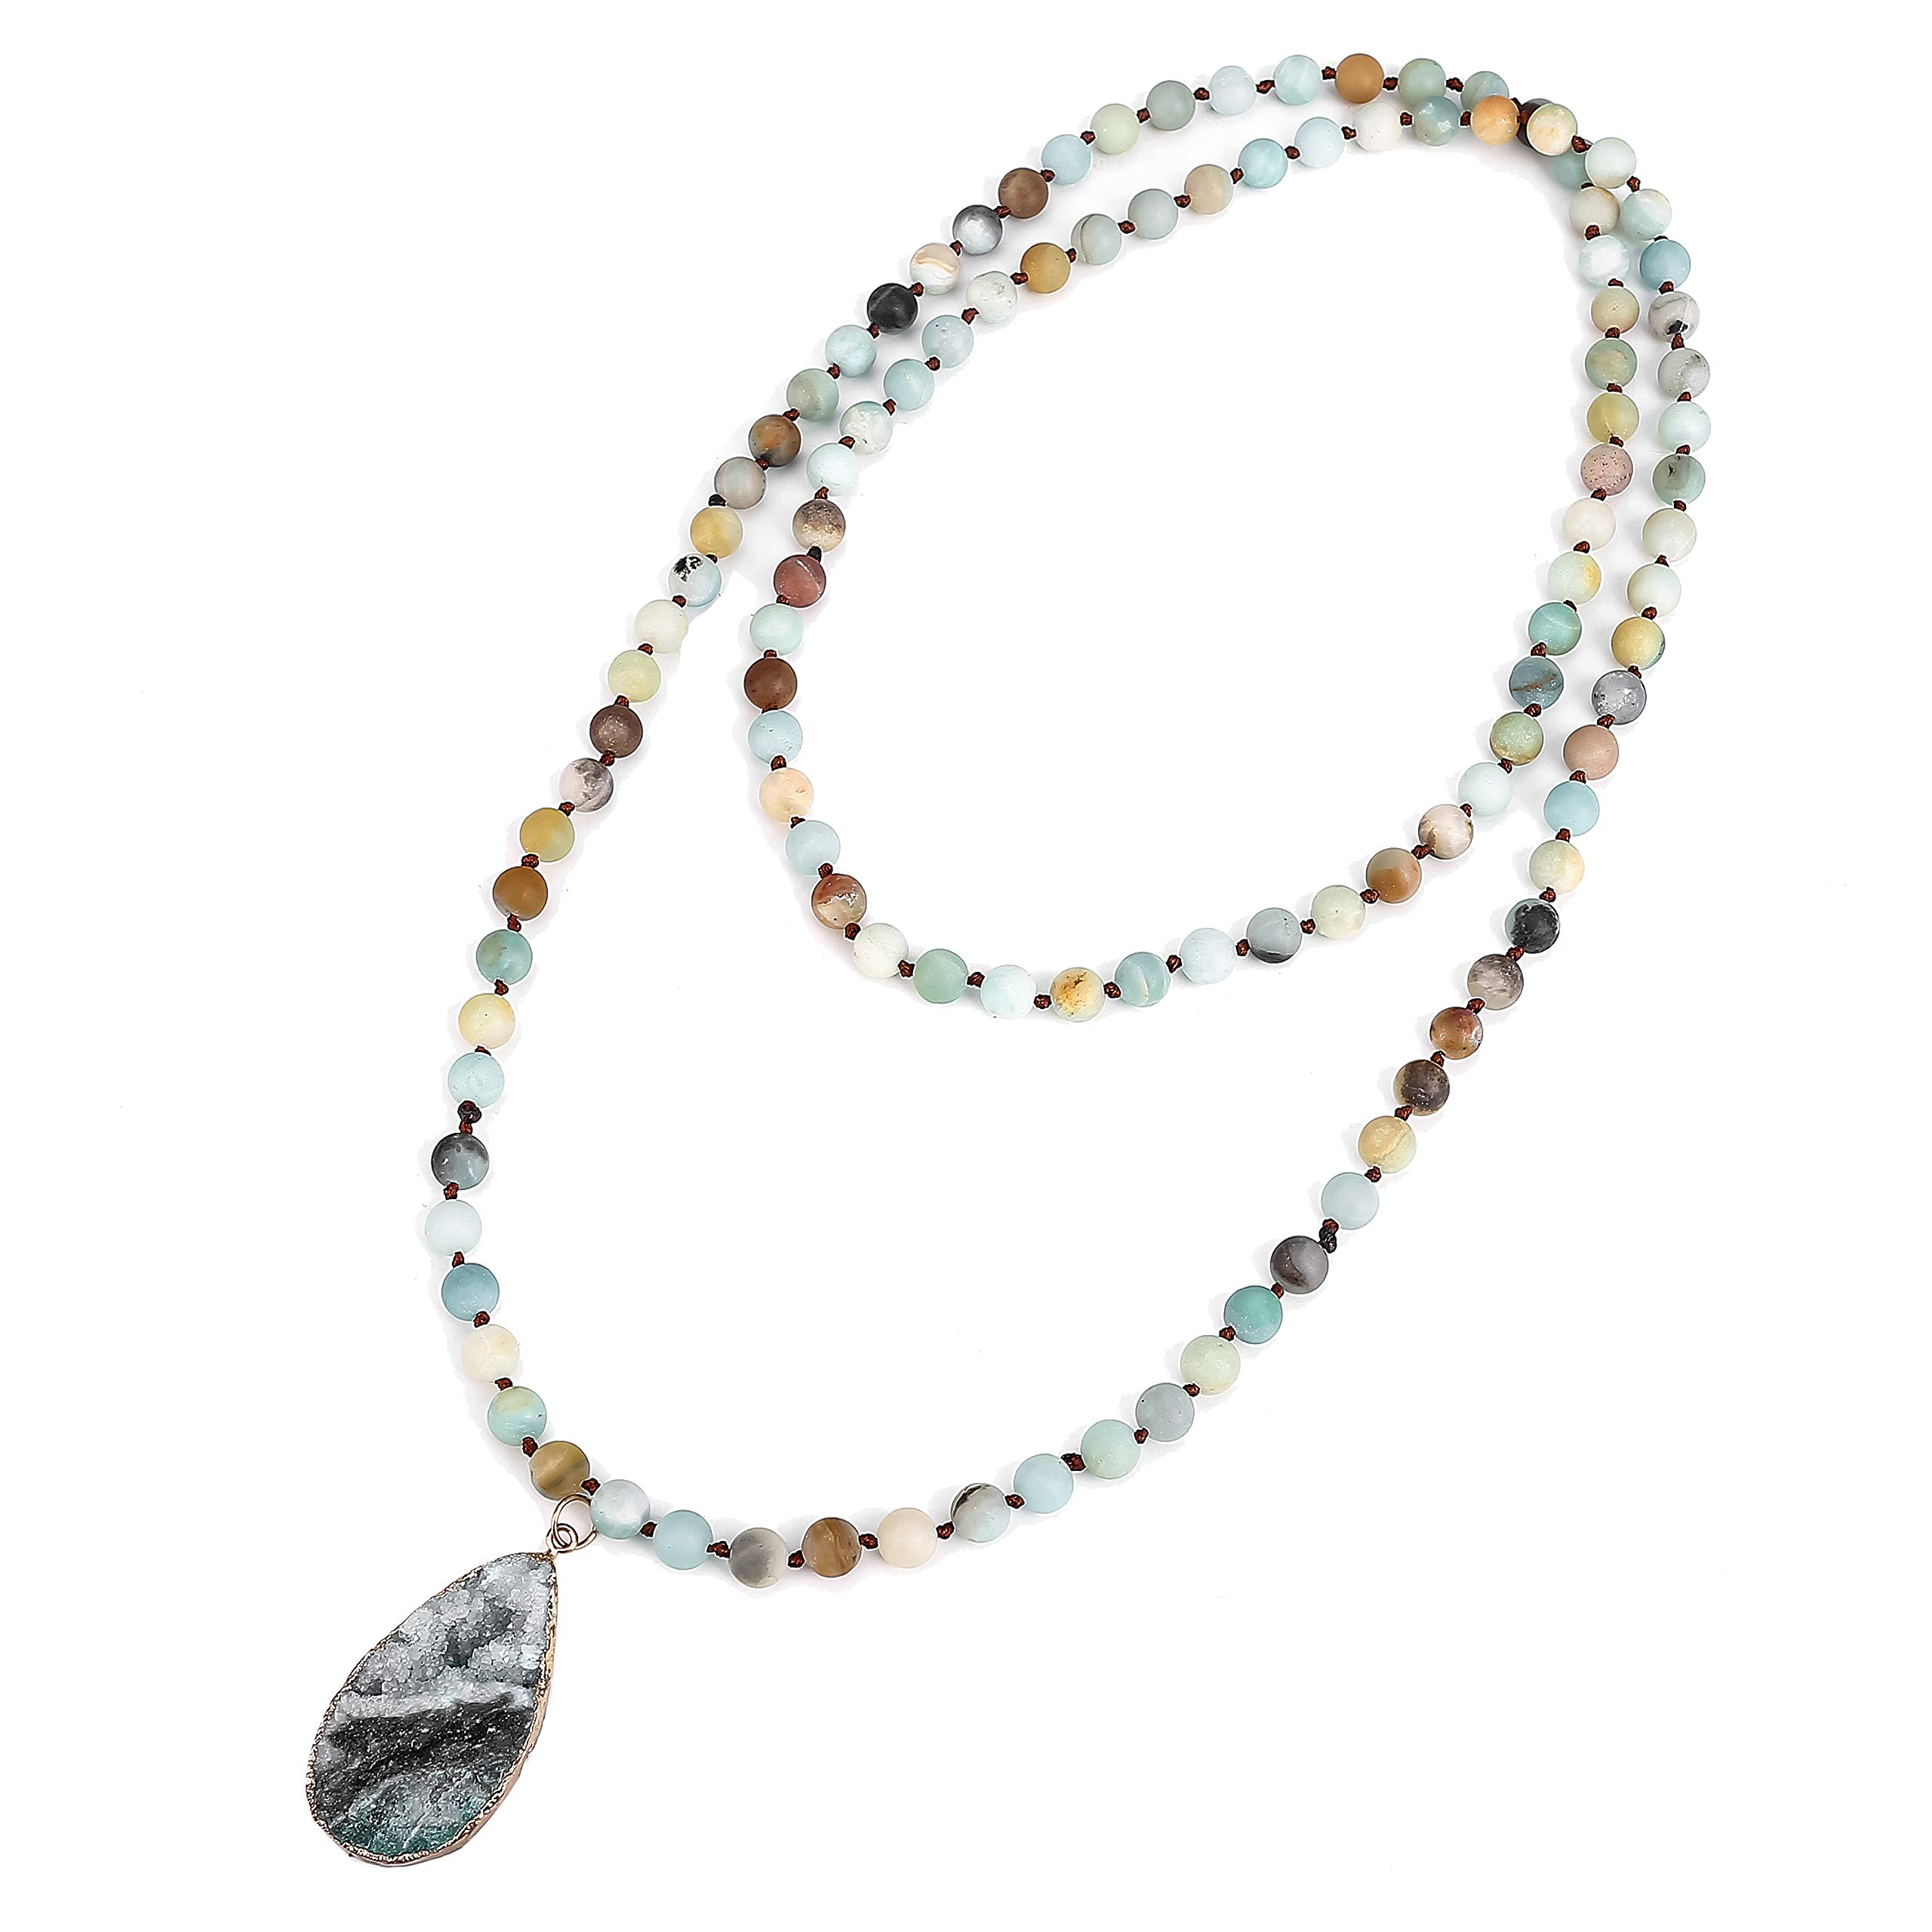 ZHEPIN Handmade Jewelry Natural Matte Amazonite Stone Endless Necklace Long Knotted Necklace for Women